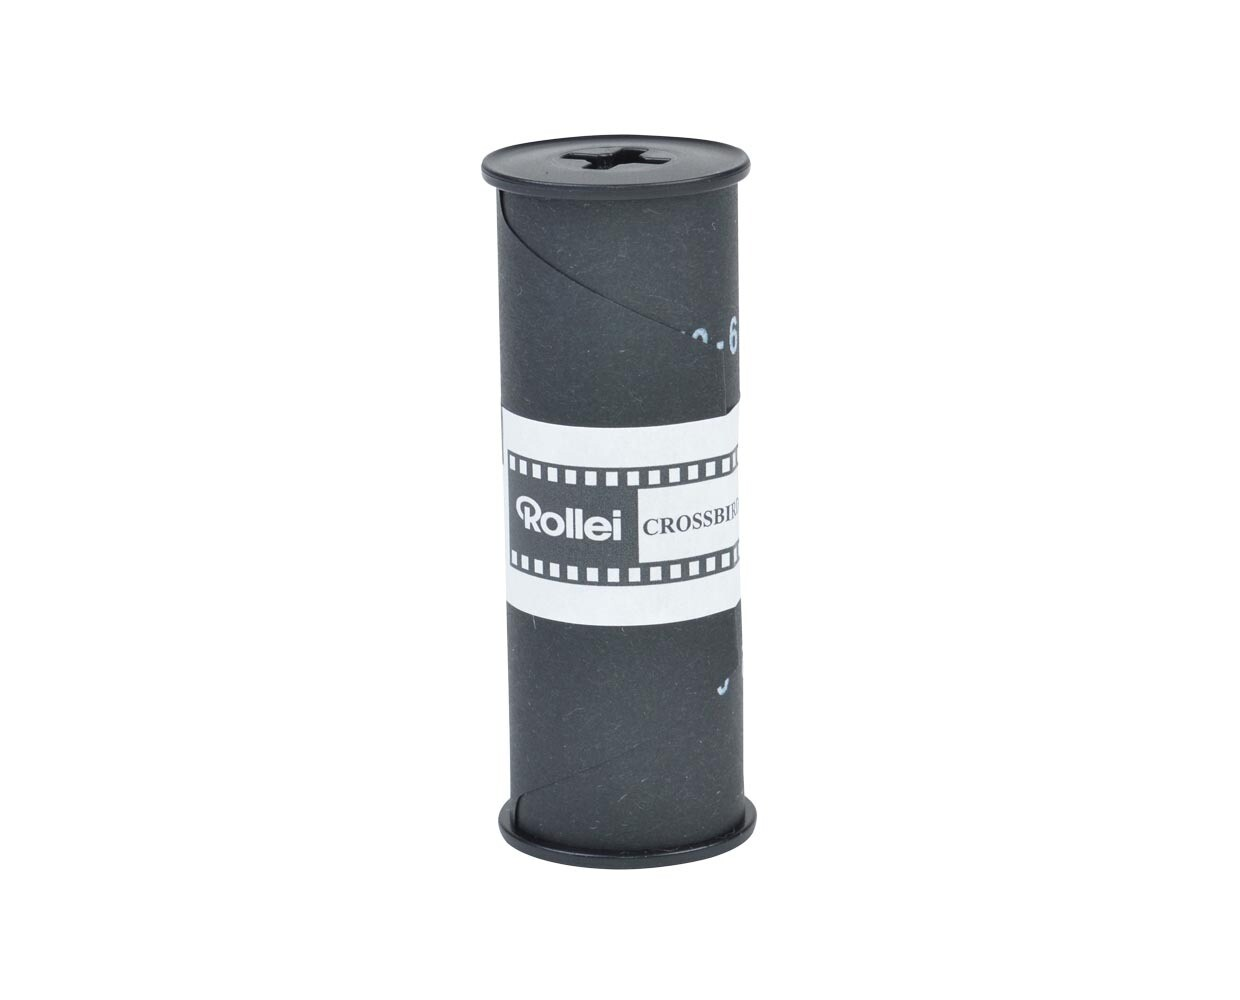 ROLLEI Crossbird 200 Color Transparency Film (120 Roll Film) - pre-order now (available from approx. 07.04.2021)